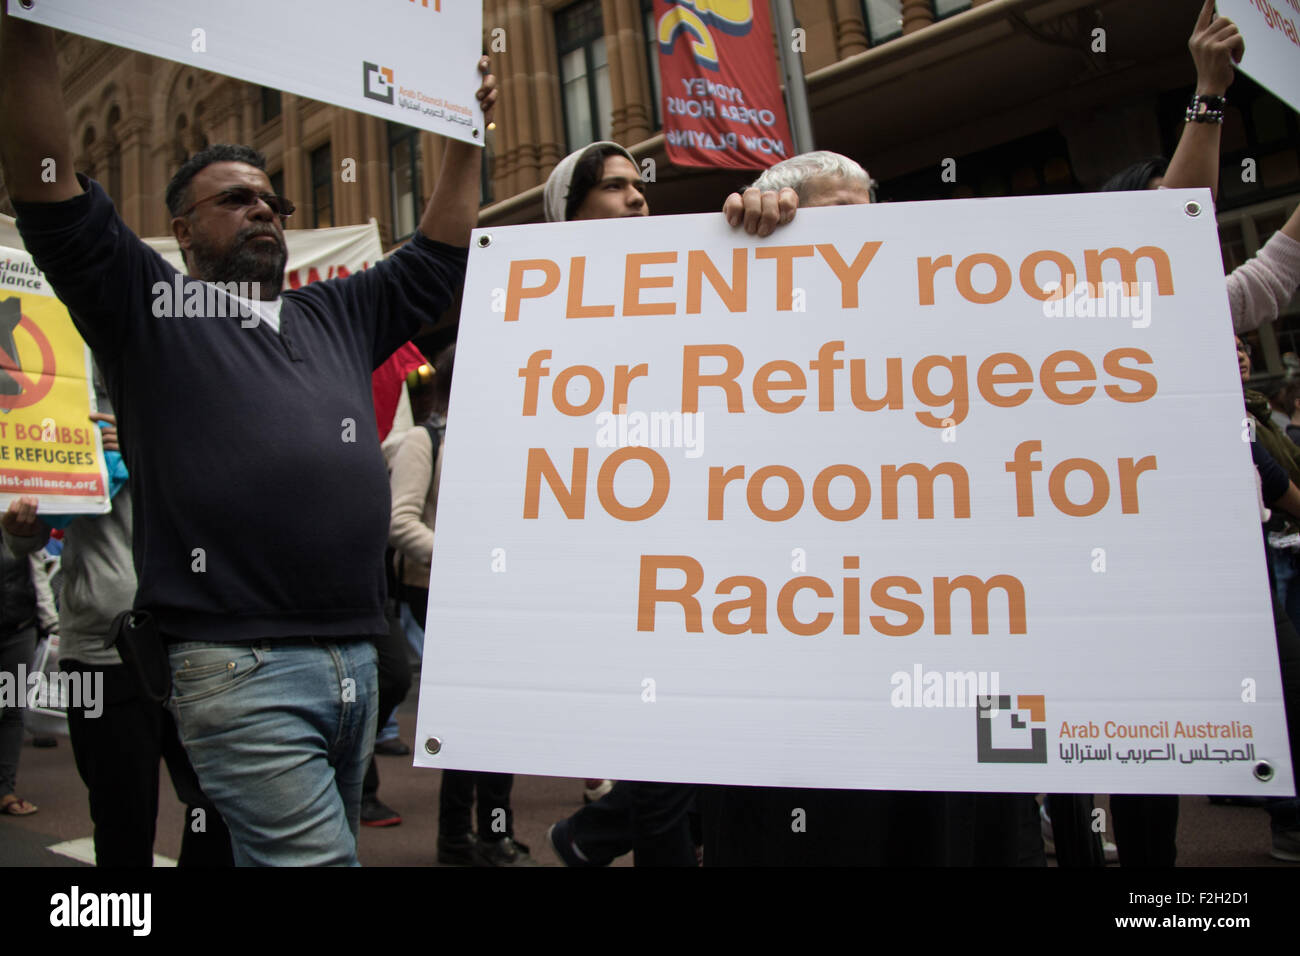 Sydney, Australia. 19 September. A rally and march against fear and 'racism', and in support of diversity and multiculturalism - Stock Image